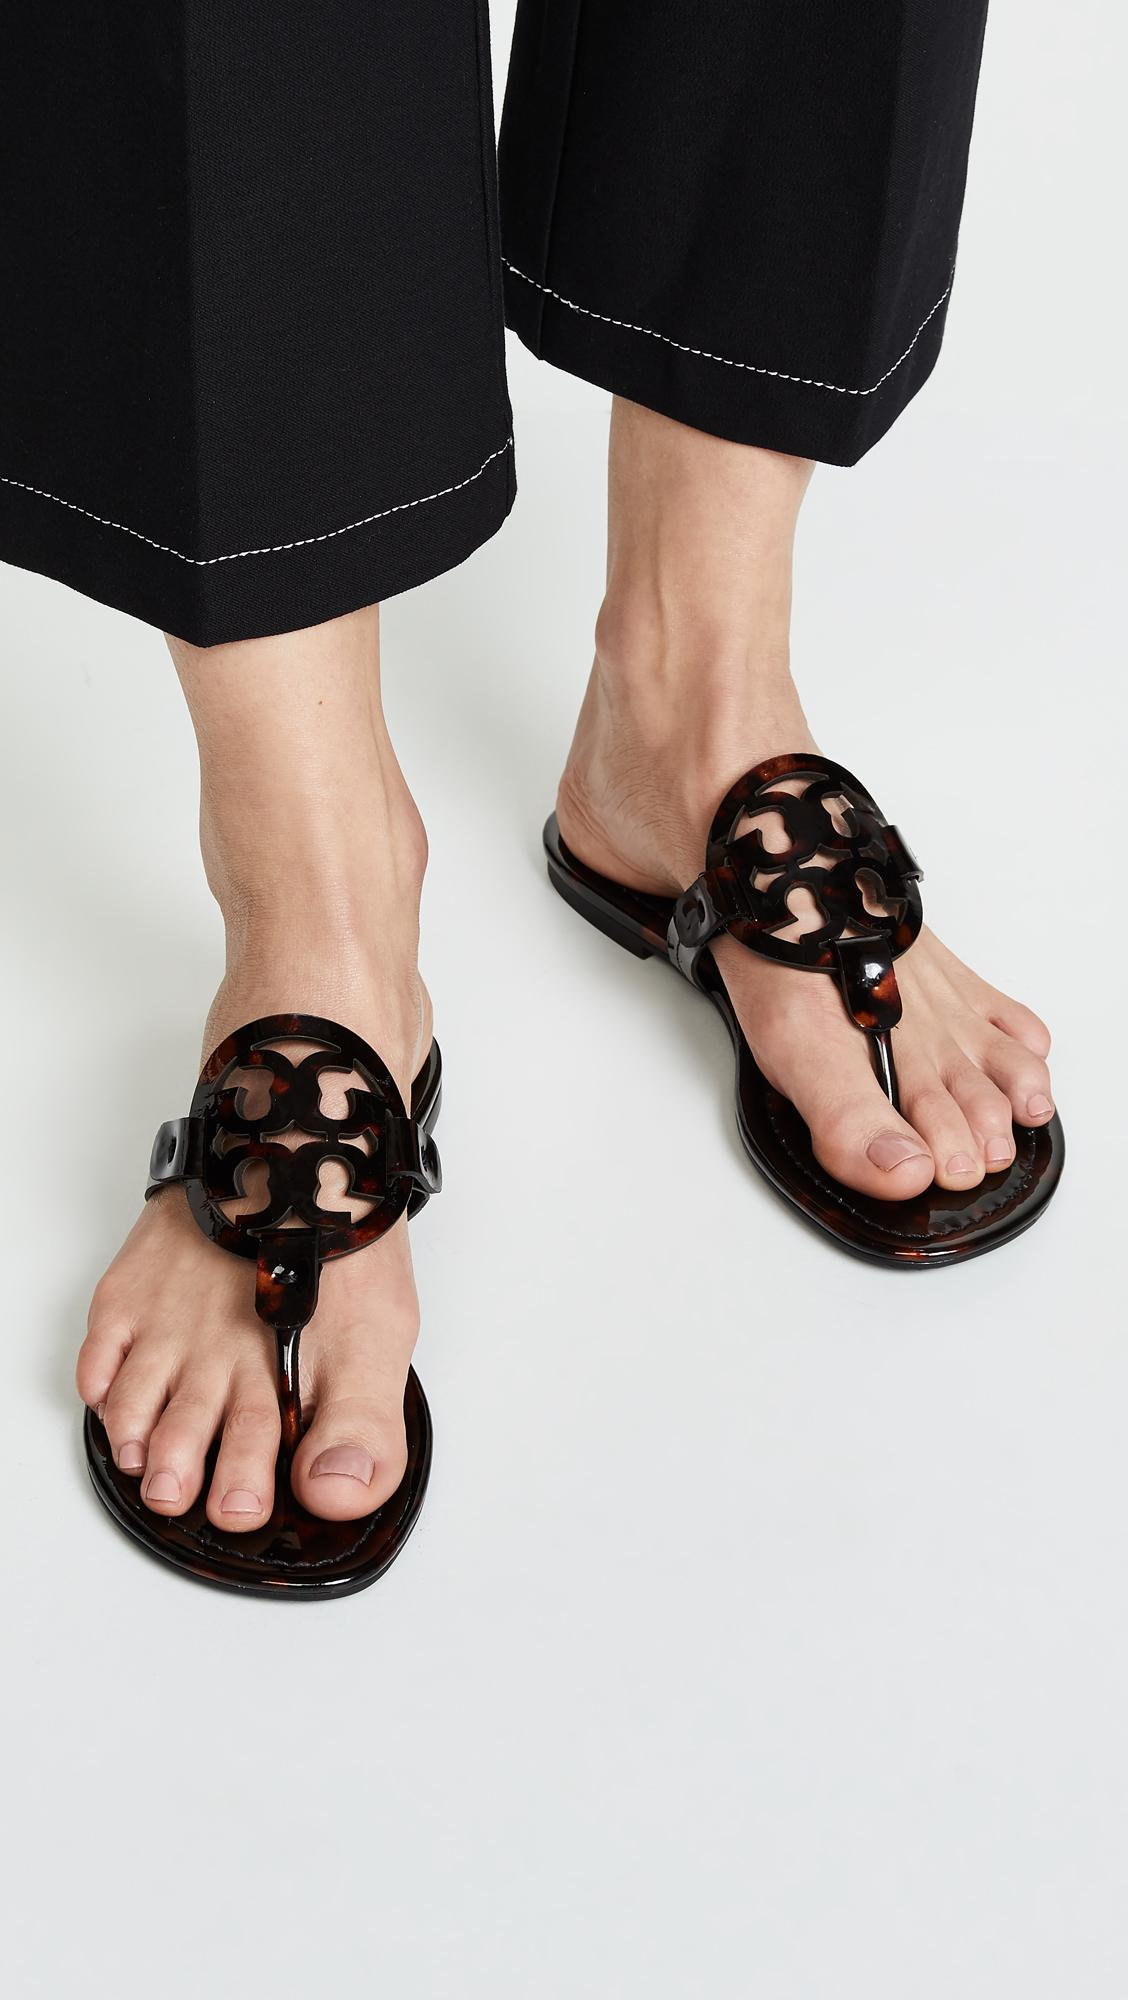 d05f03e81f1 Tory Burch - Black Miller Thong Sandals - Lyst. View fullscreen